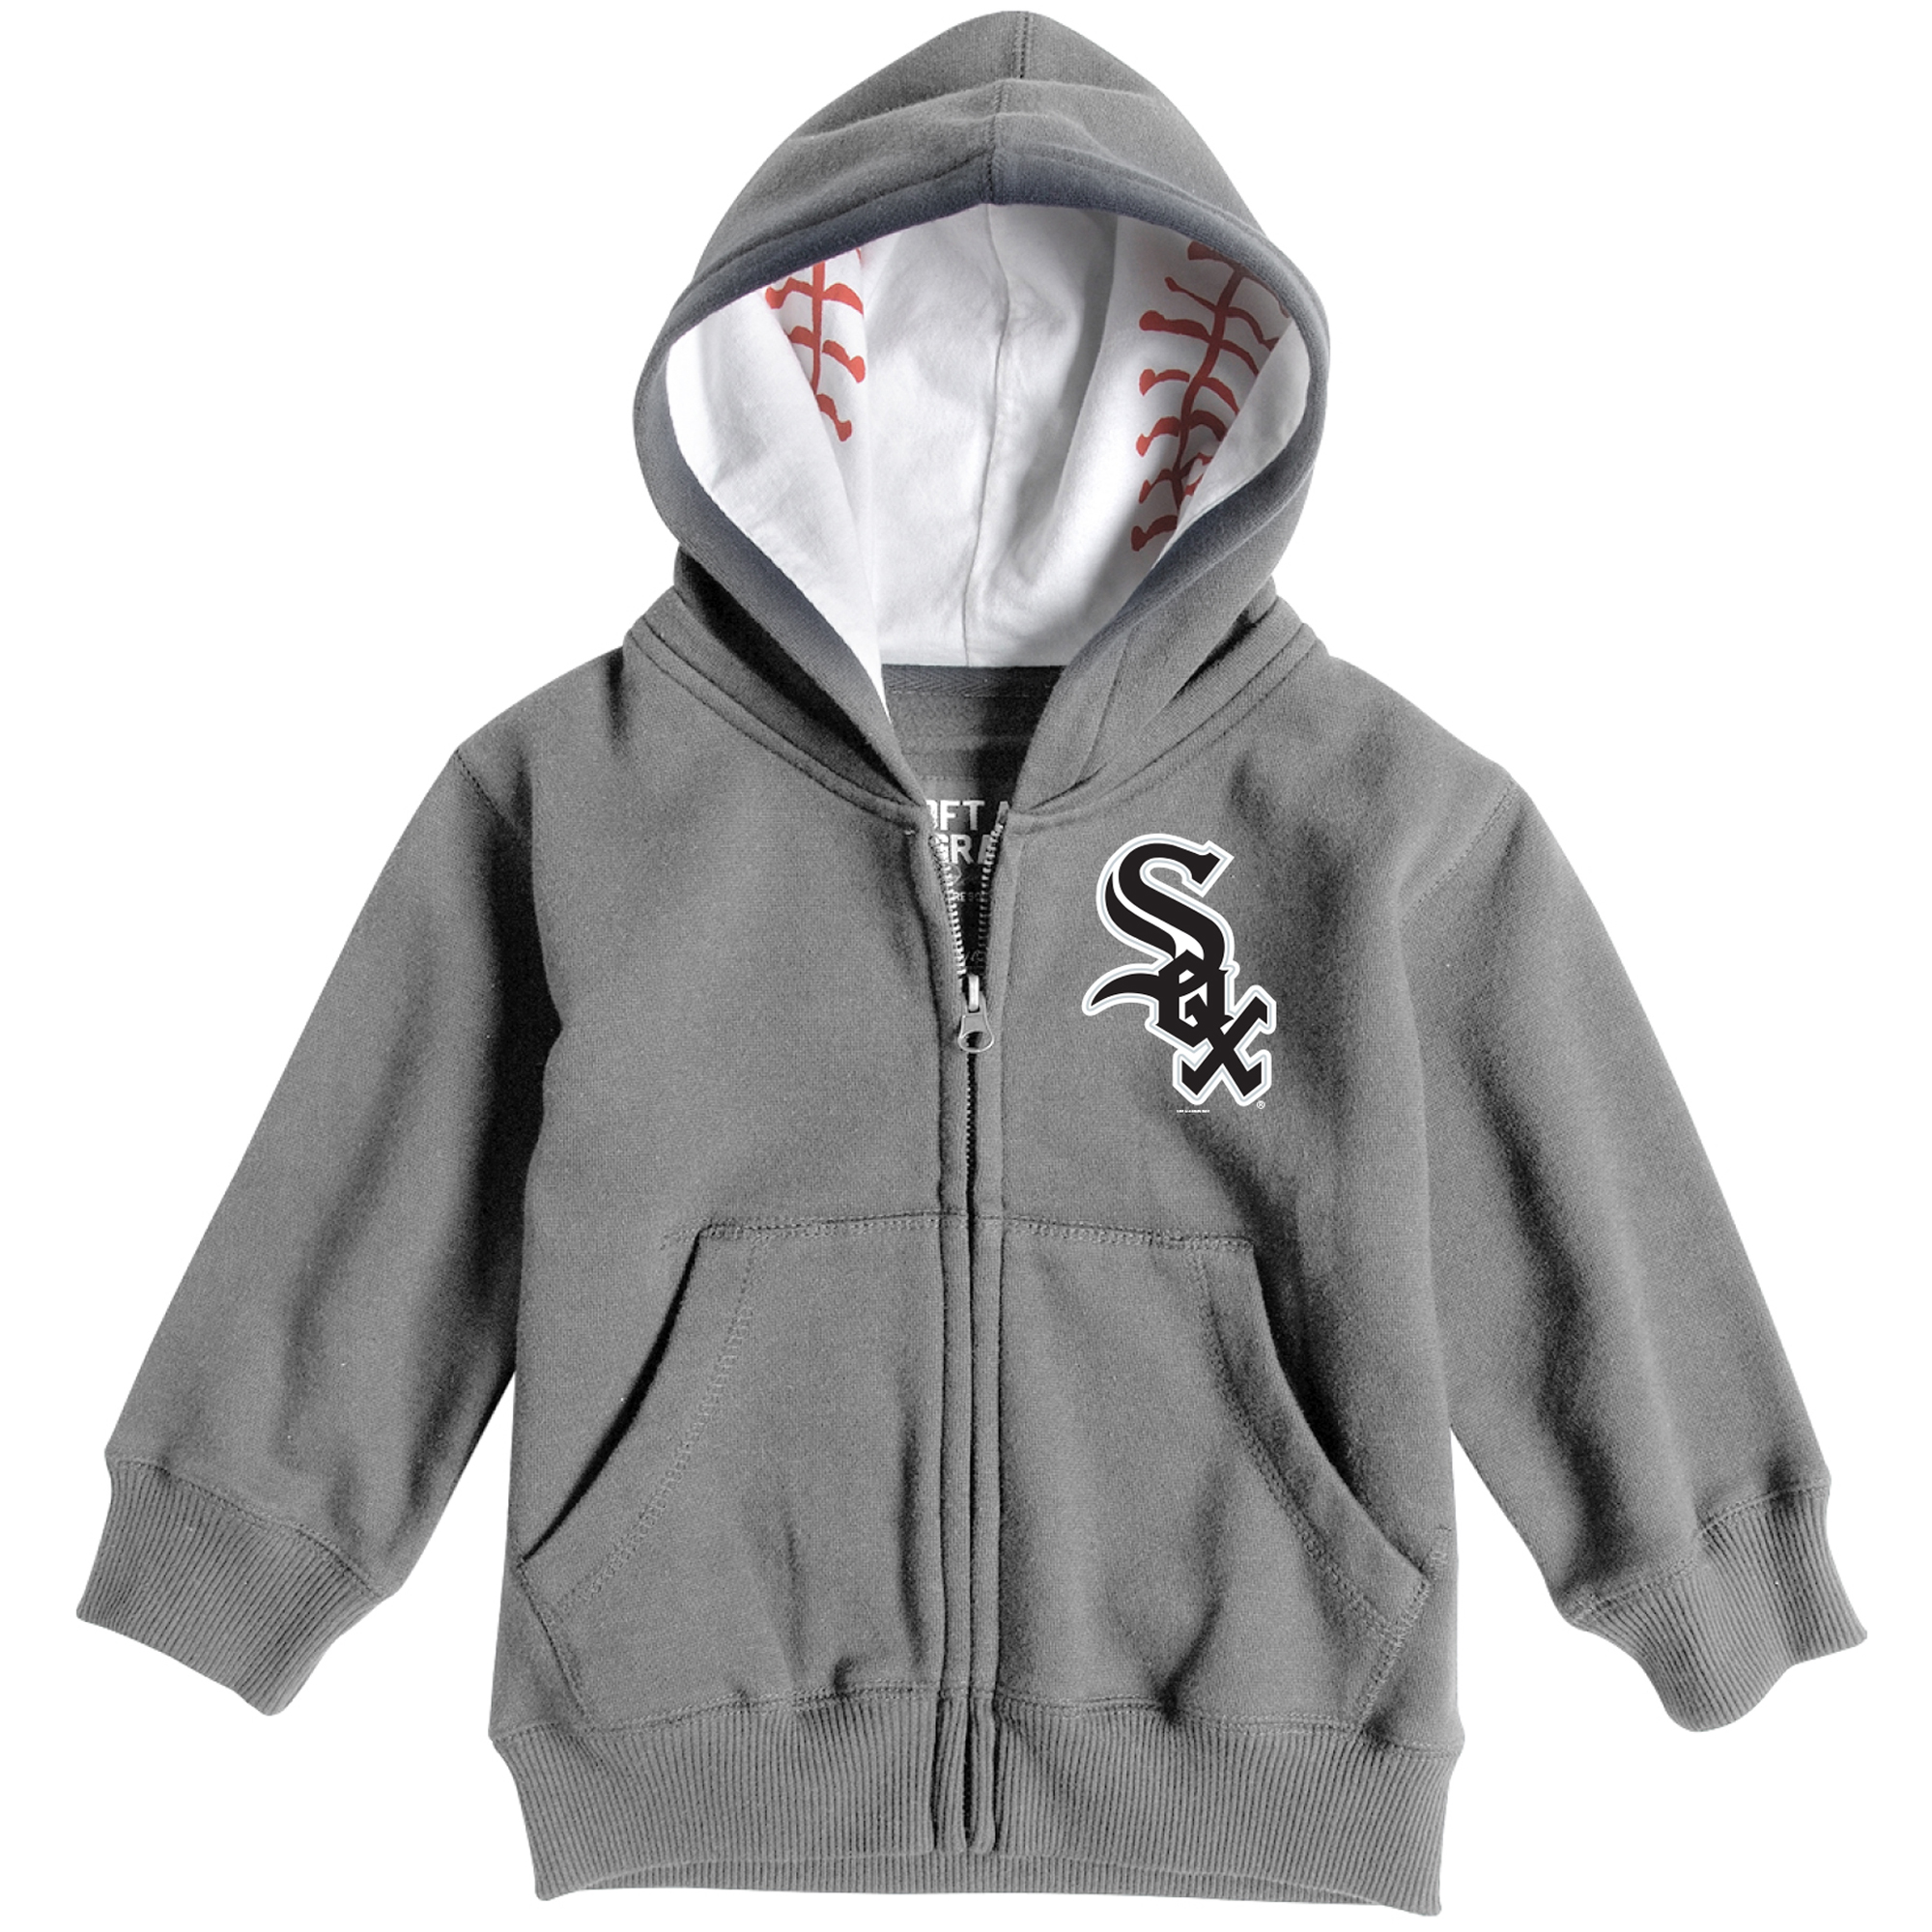 Chicago White Sox Soft as a Grape Toddler Baseball Print Full-Zip Hoodie - Heathered Gray